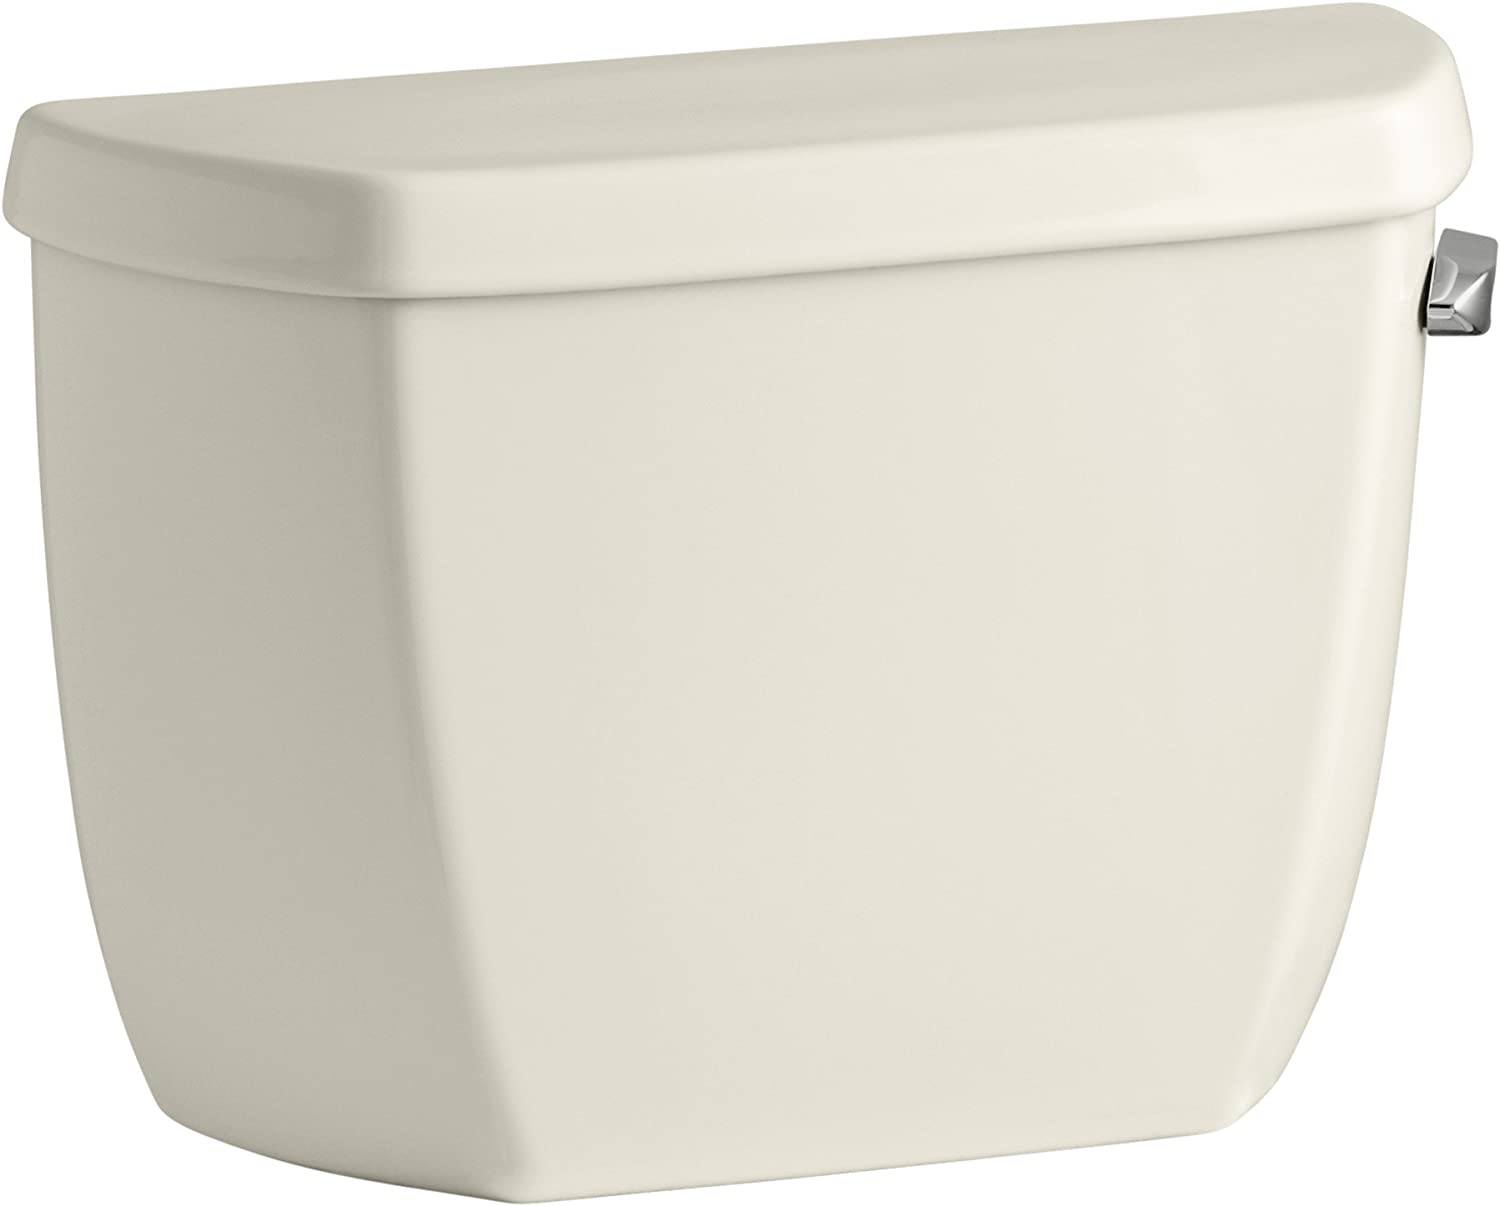 Wellworth Classic 1.0 GPF Toilet with Lever Limited Financial sales sale time trial price Tank Trip Right-Hand